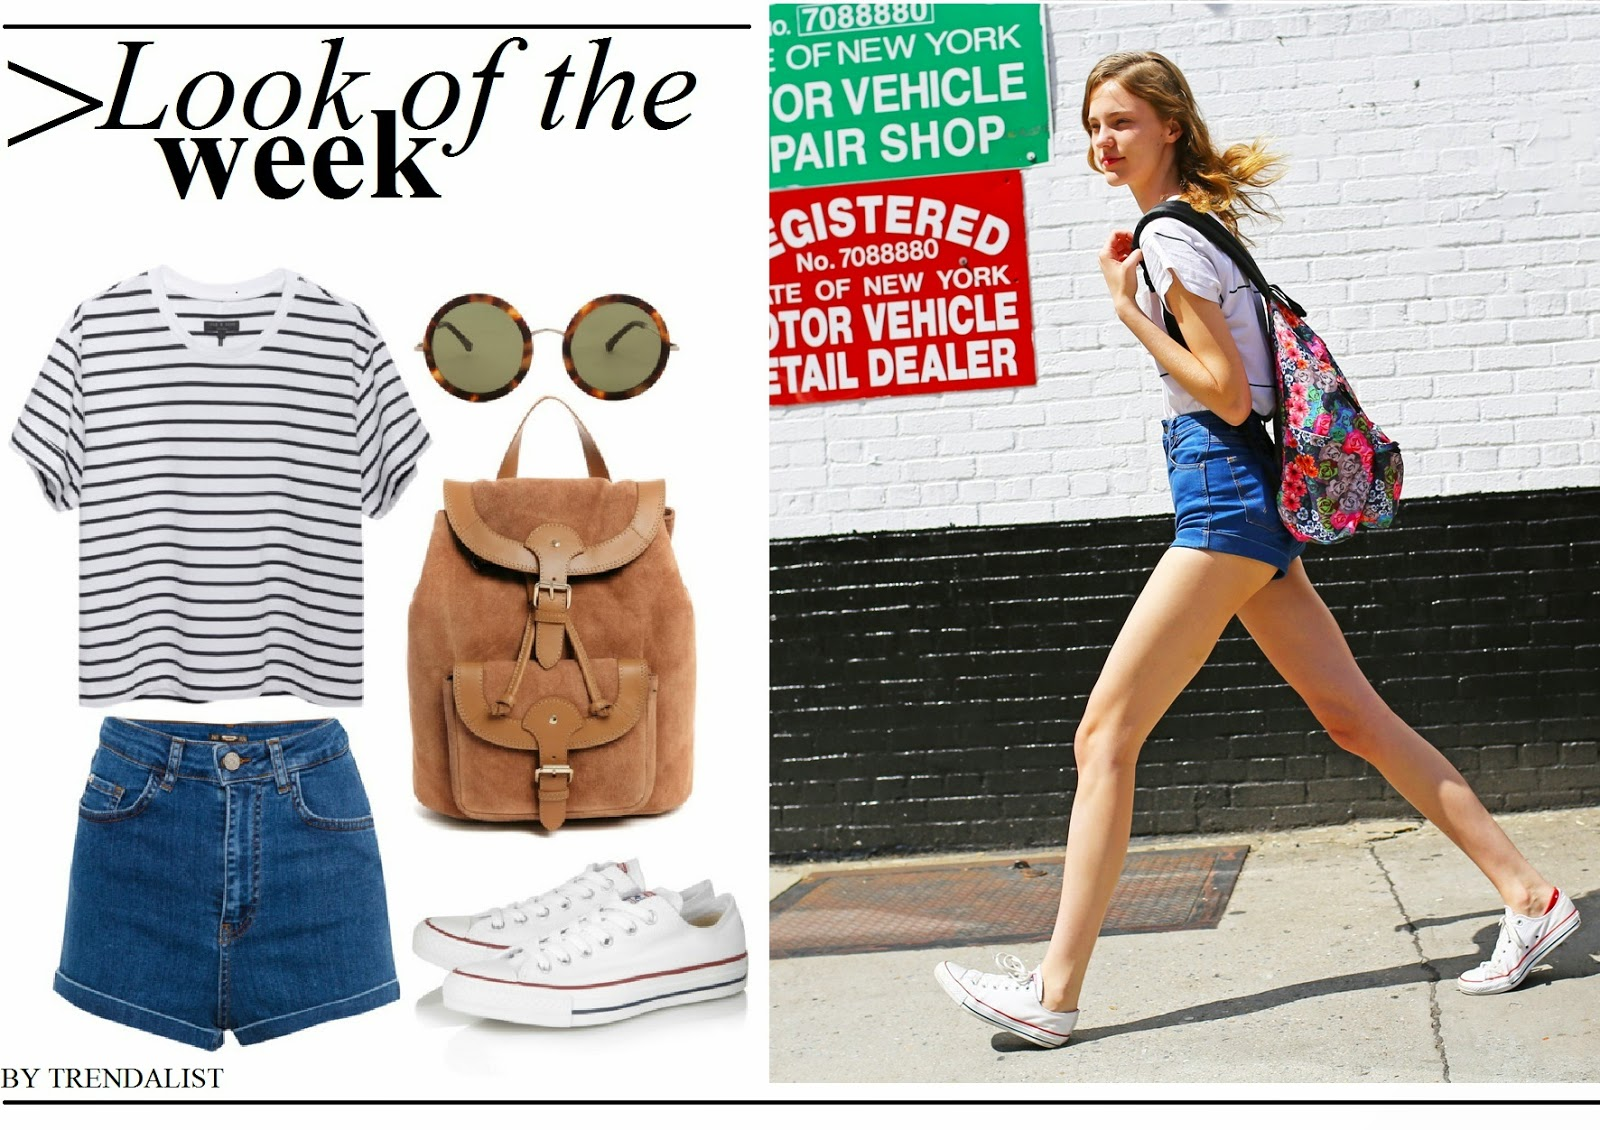 Look of the week